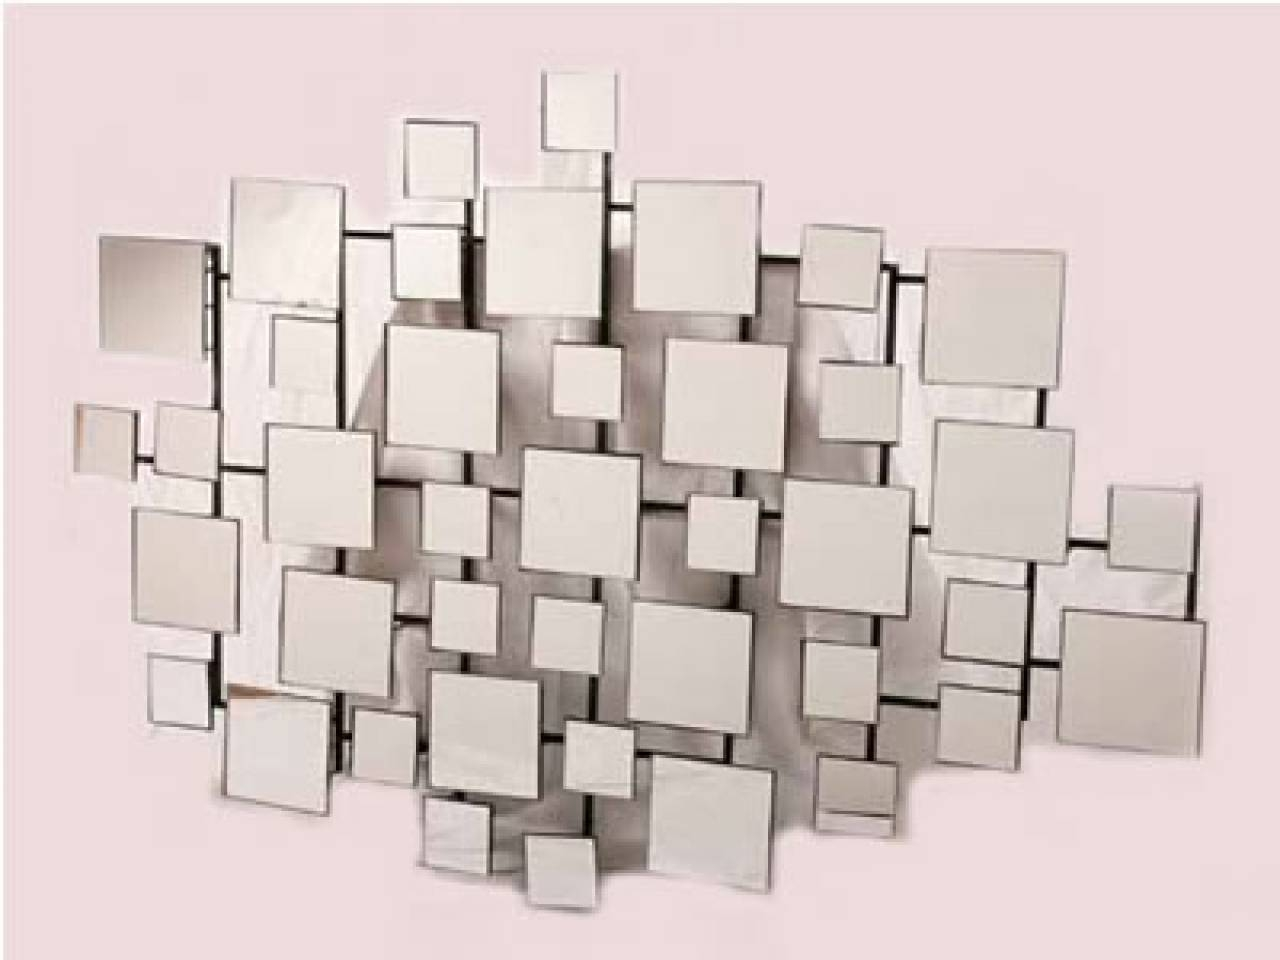 Wall Art Designs: Mirrored Wall Art Metal Mirror Wall Art Mirrored Intended For 2017 Abstract Mirror Wall Art (View 12 of 15)